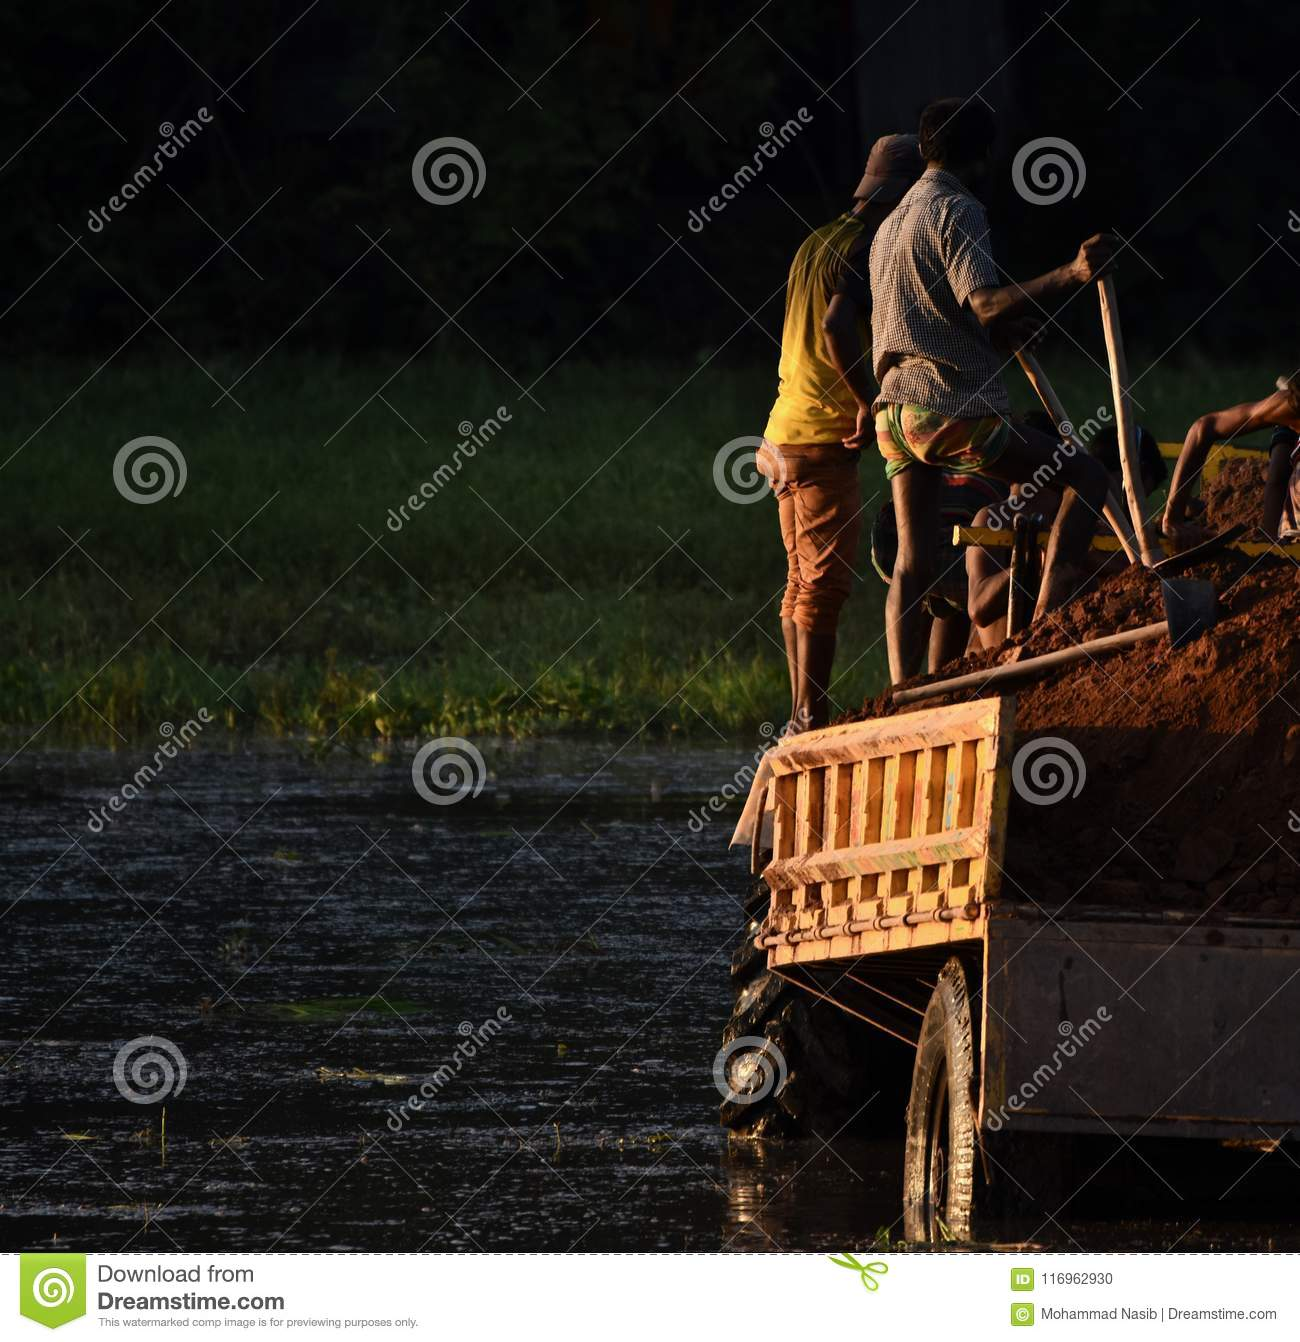 Download People Working Together On A Tractor Vehicle Unique Photo Editorial Image - Image of people, image: 116962930